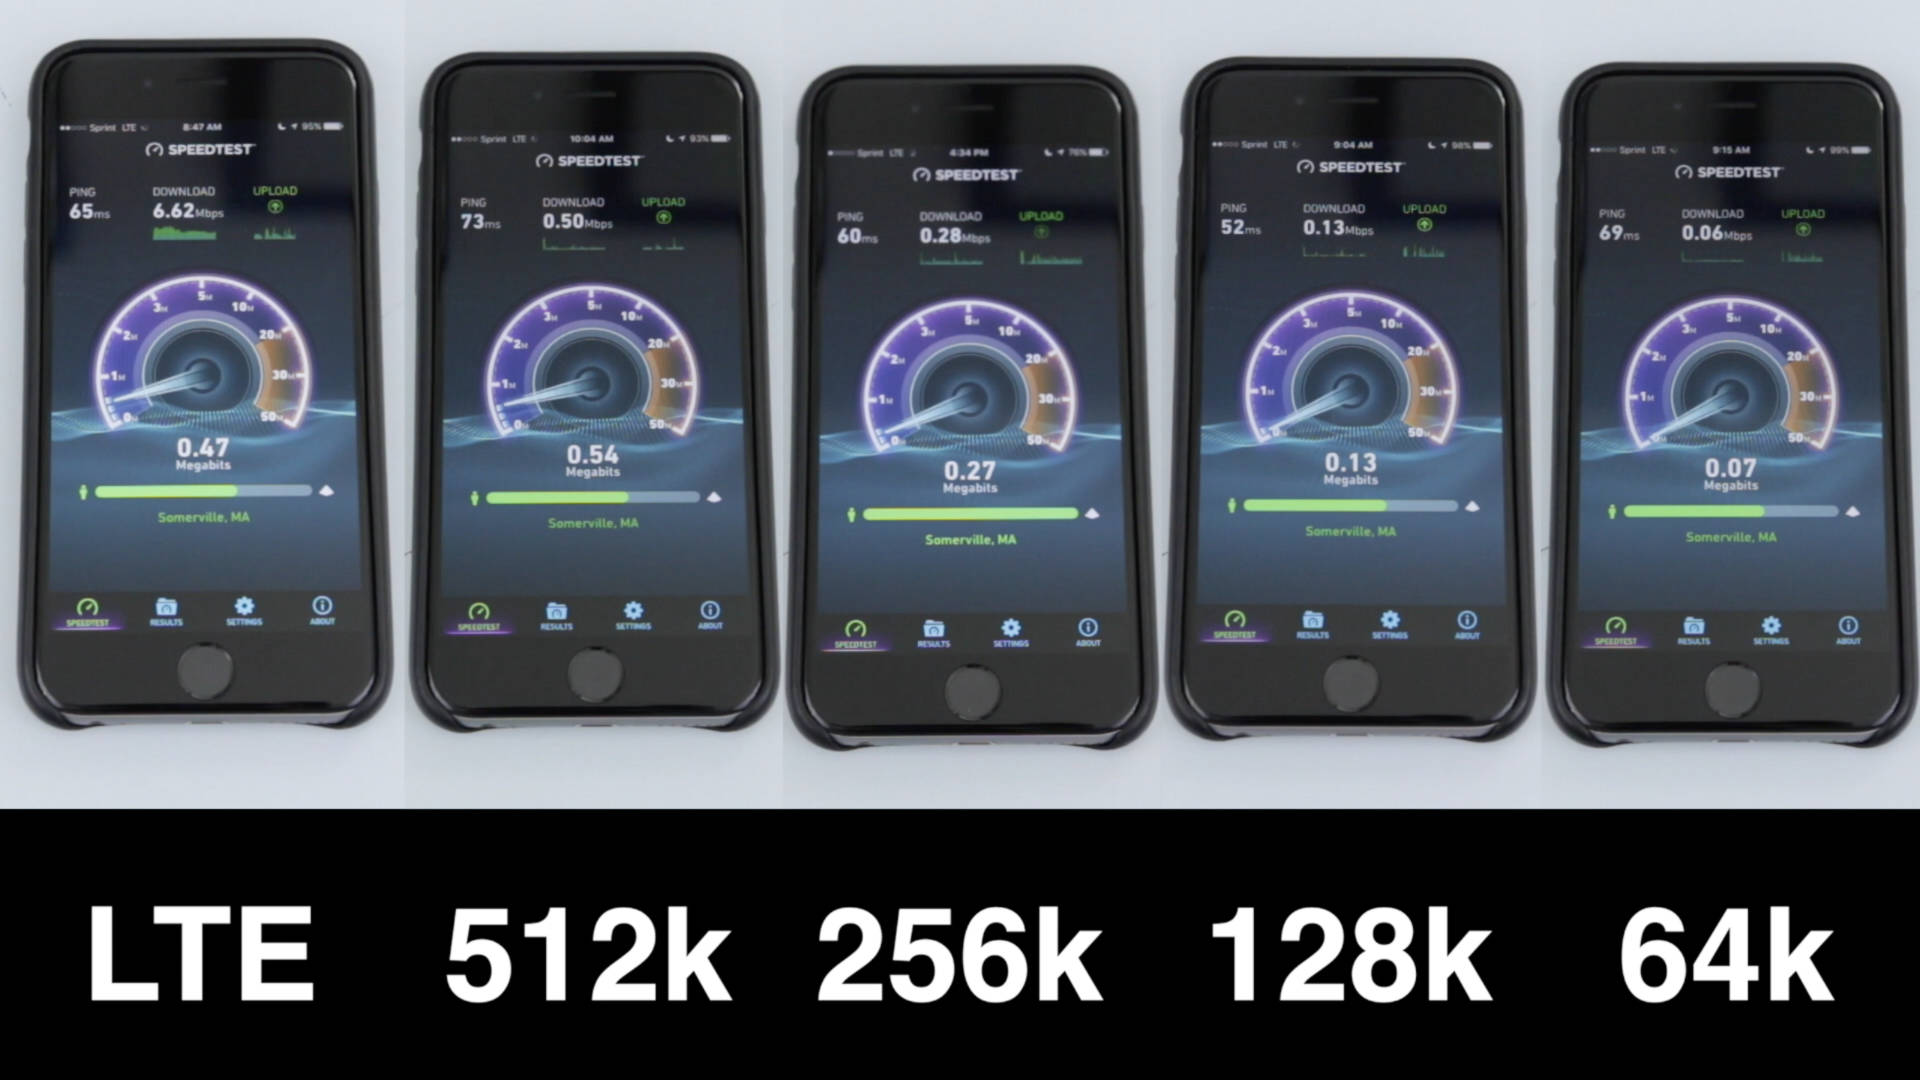 cellular data speed test comparing LTE vs 3G vs 2G data speeds